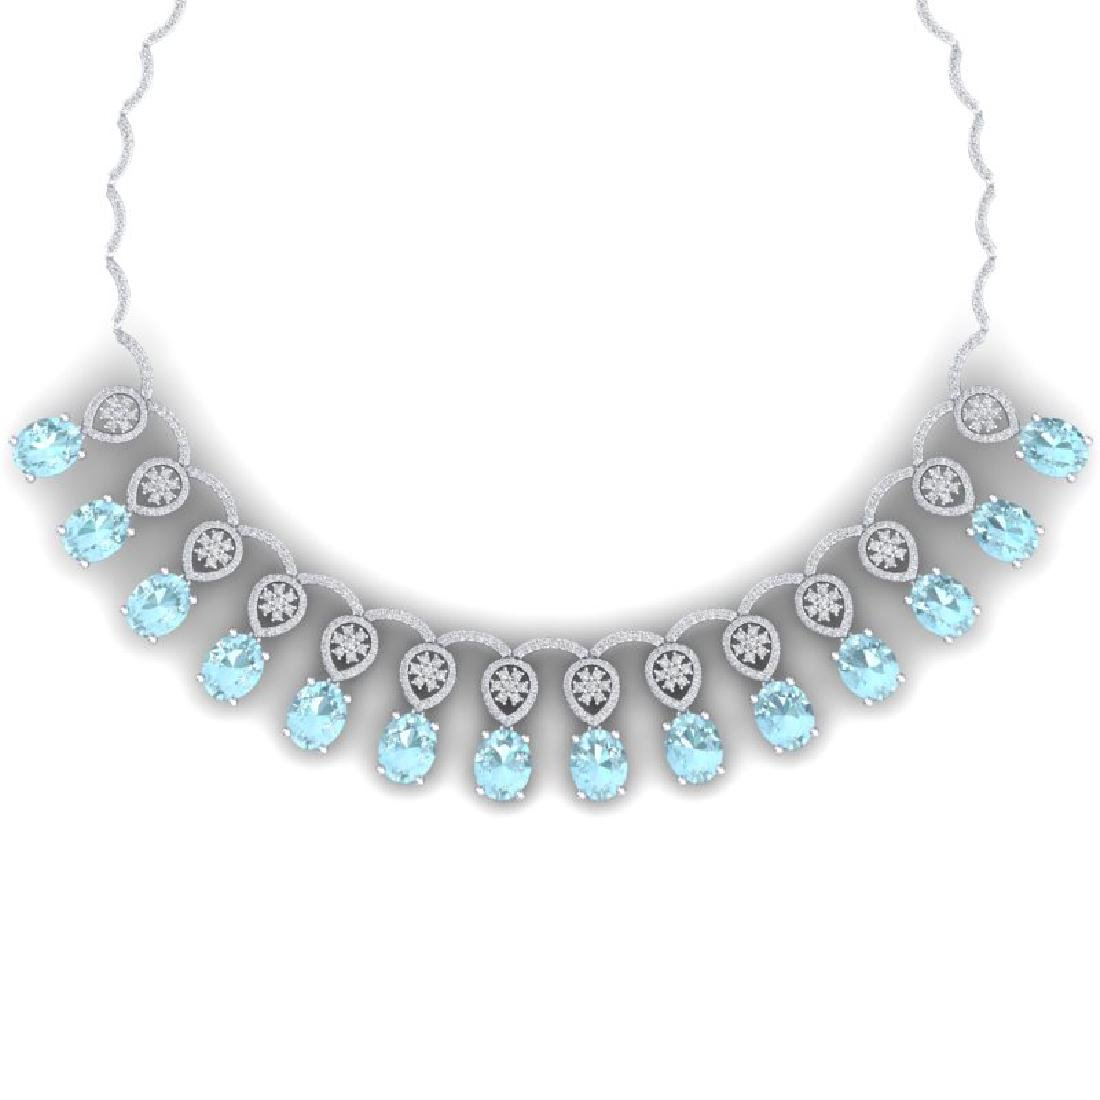 55.35 CTW Royalty Sky Topaz & VS Diamond Necklace 18K